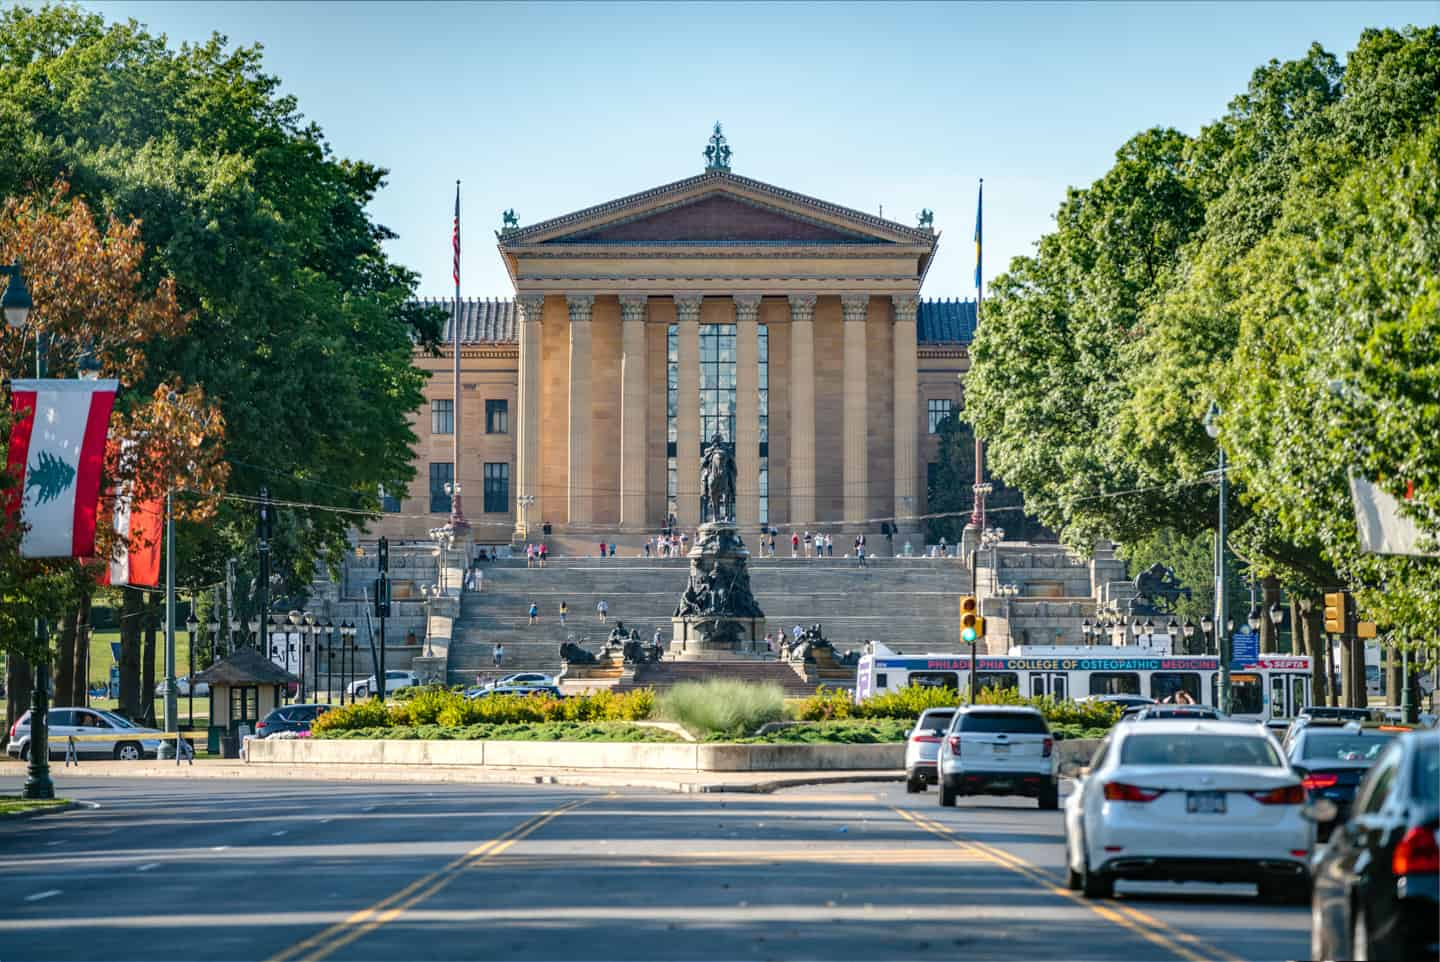 Photo of Philadelphia Landmark - Philadelphia Museum of Art